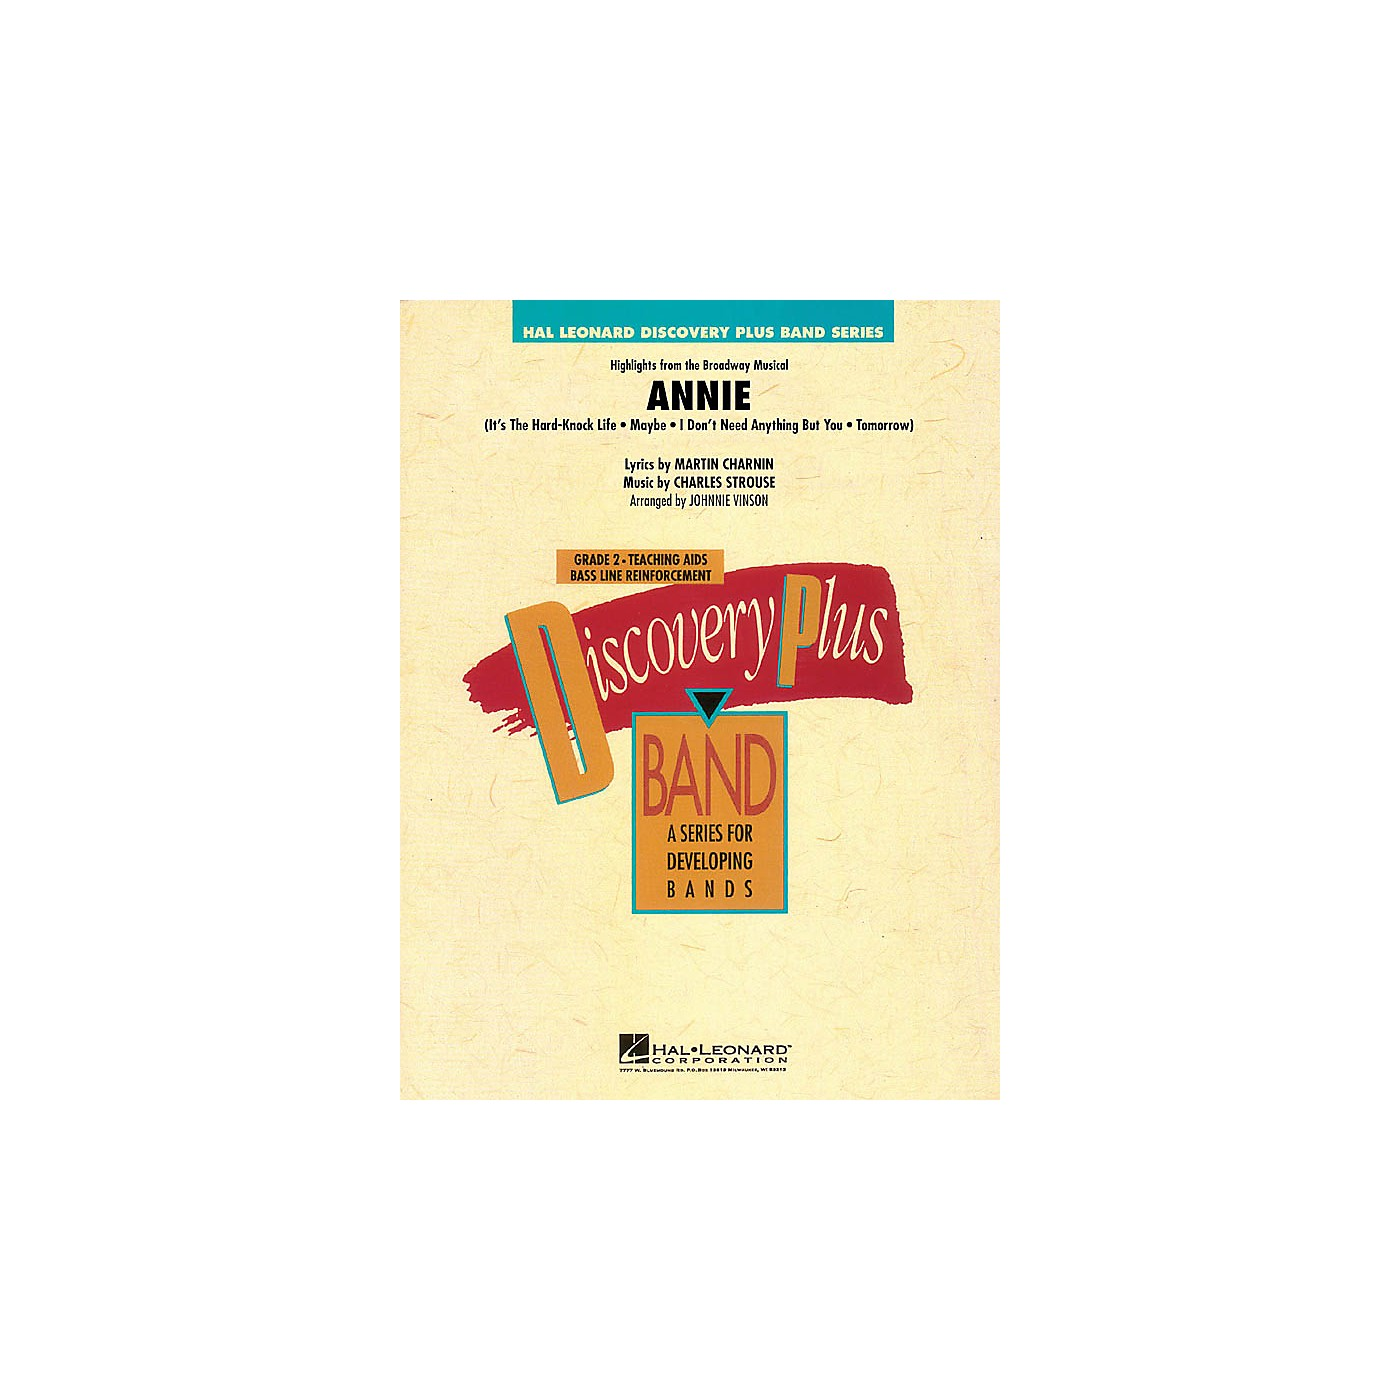 Hal Leonard Highlights from Annie - Discovery Plus Band Level 2 arranged by Johnnie Vinson thumbnail